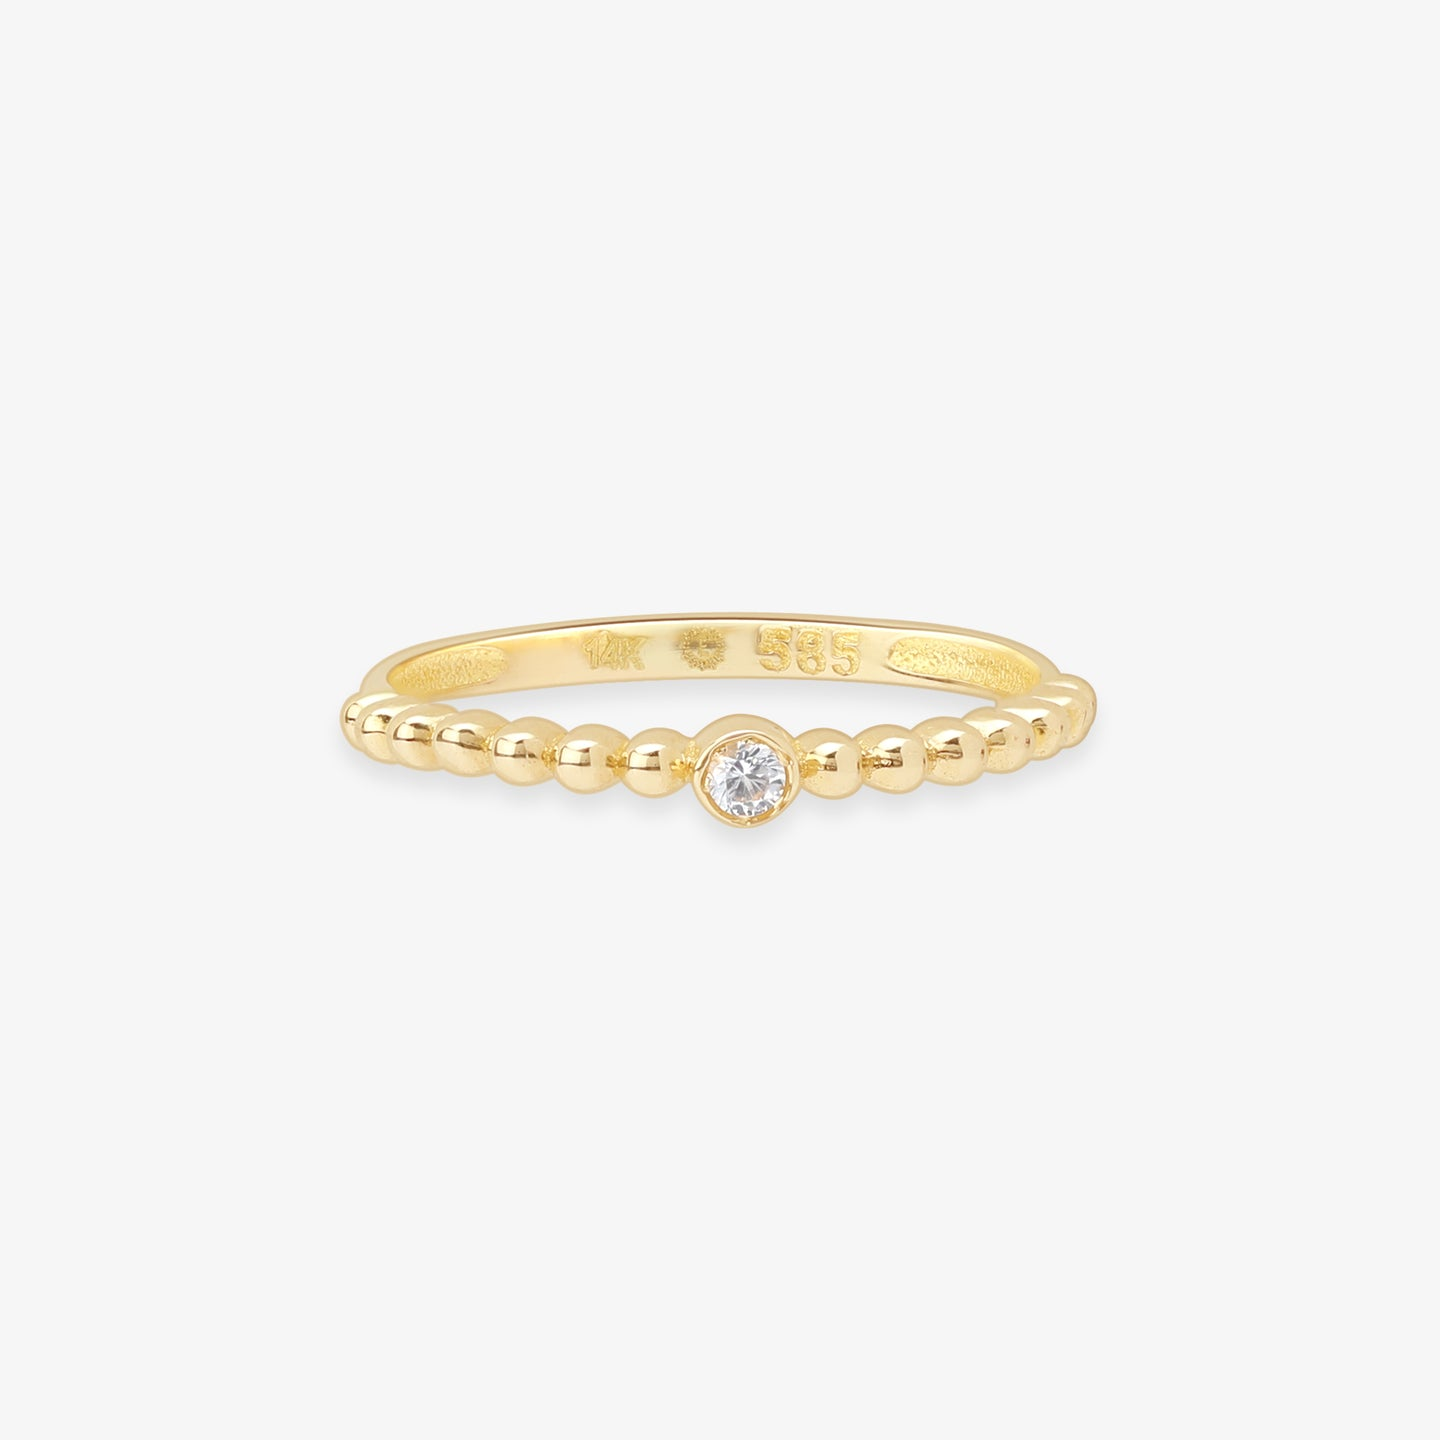 Ladies White Sapphire Solitaire Ring In Solid Gold Beaded Band - estellacollection